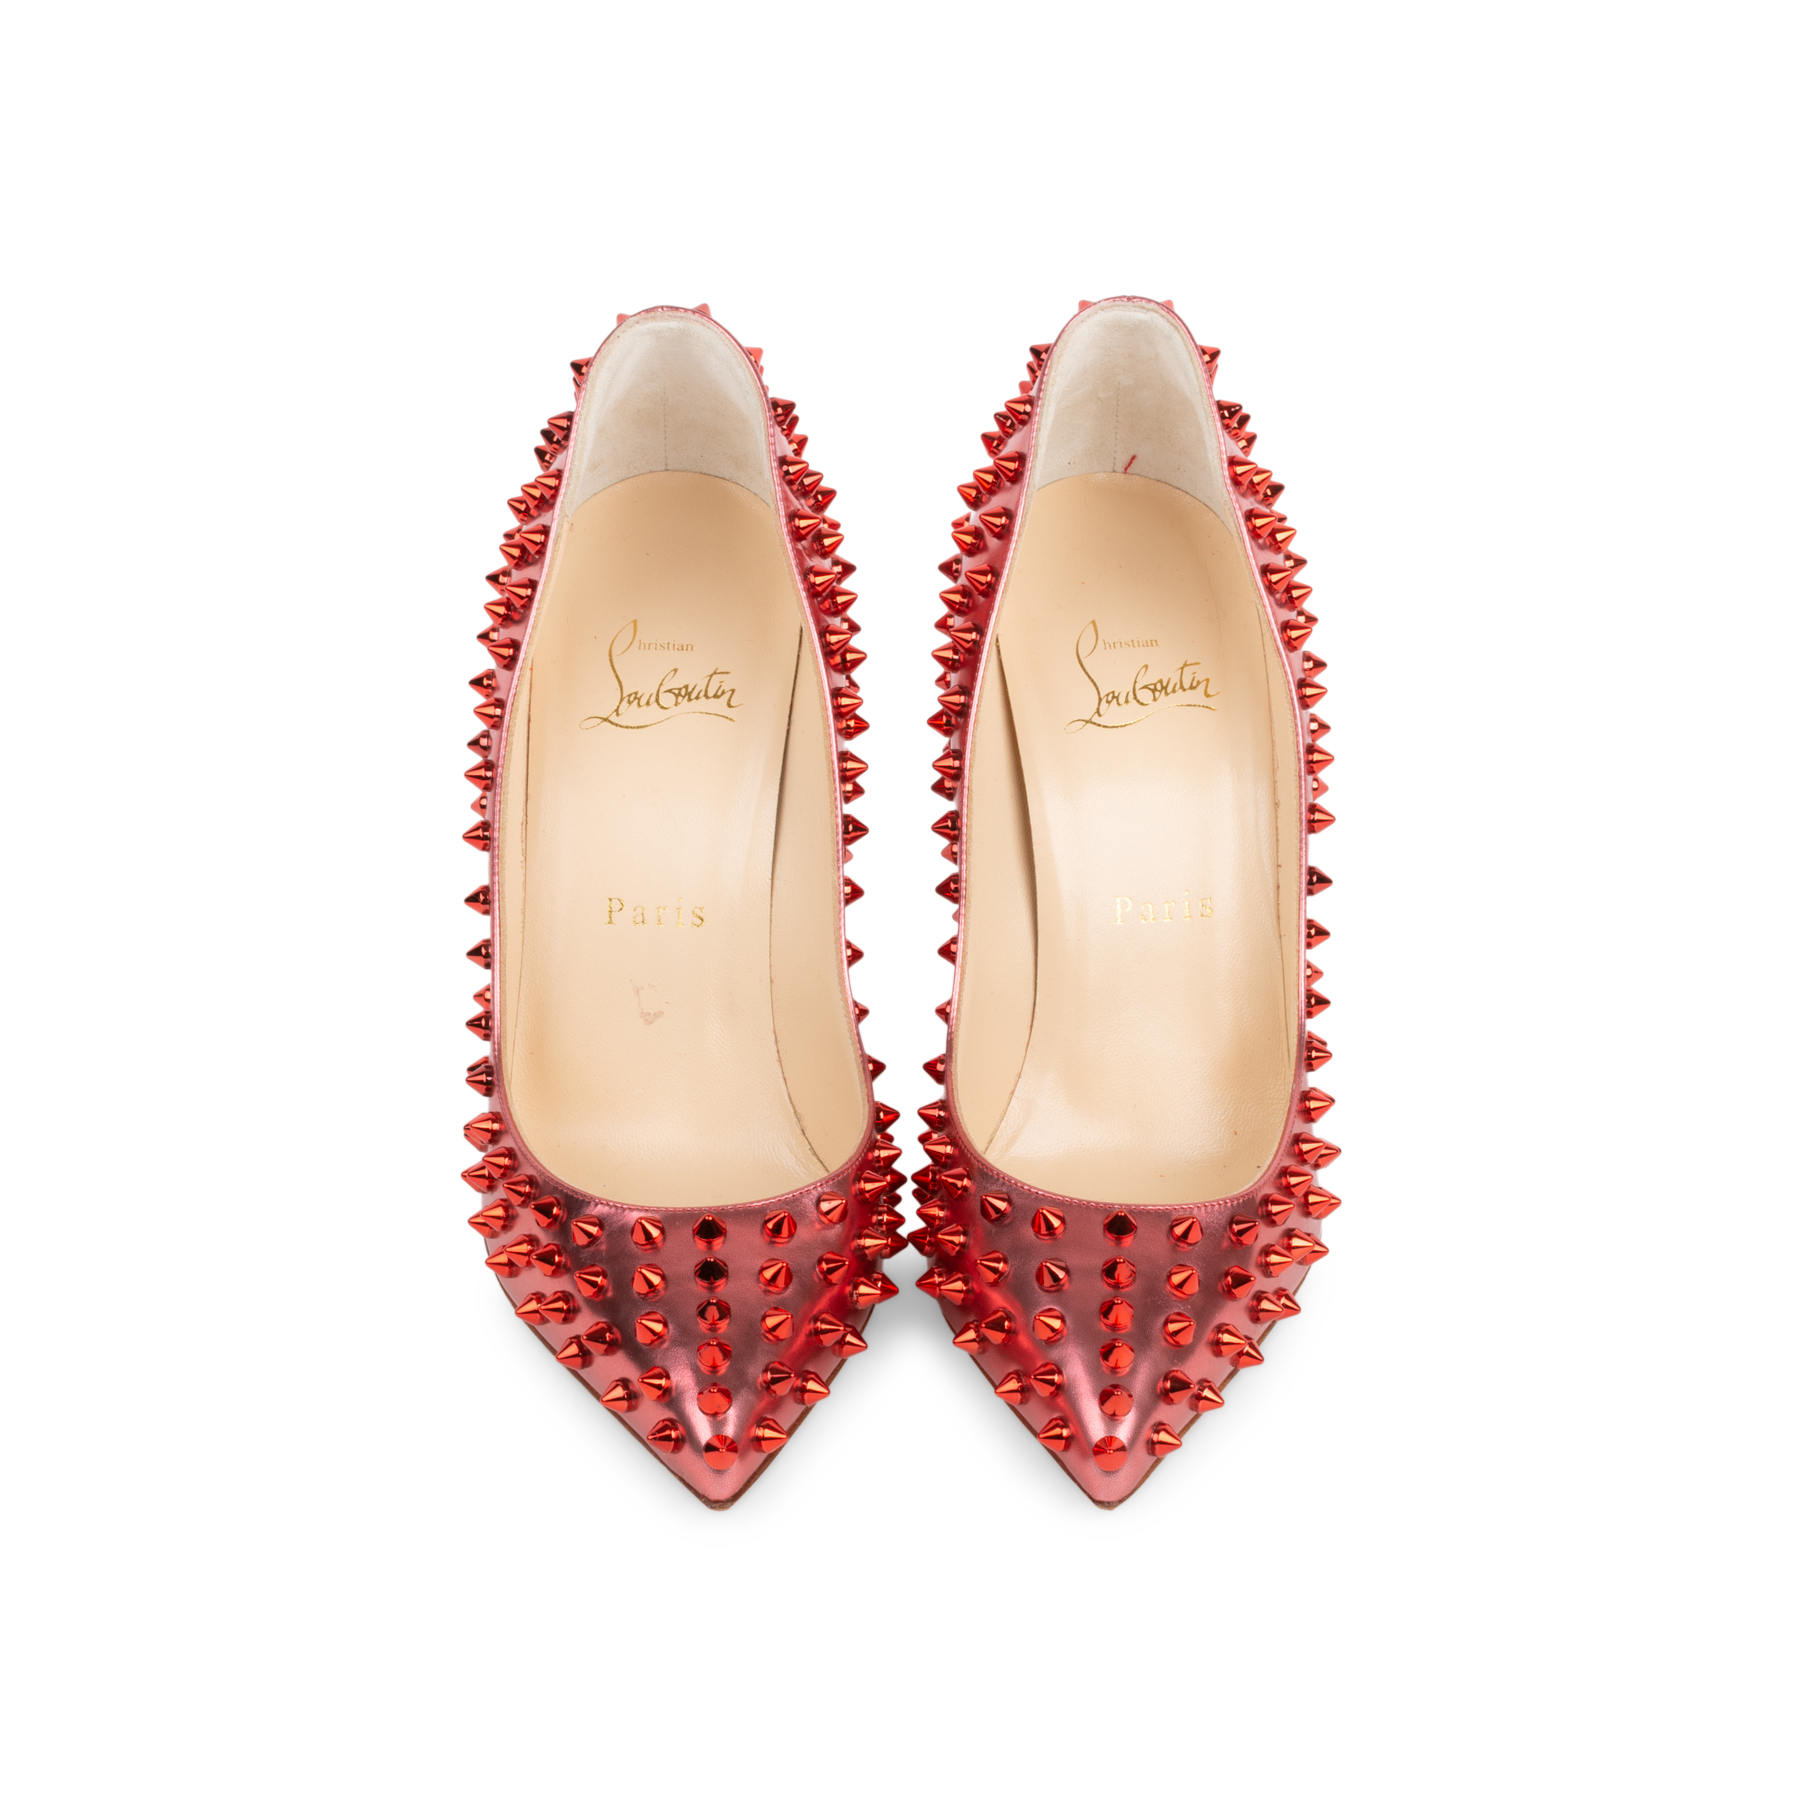 huge discount c98e2 2661c Poppy Follies Spikes 100 Pumps